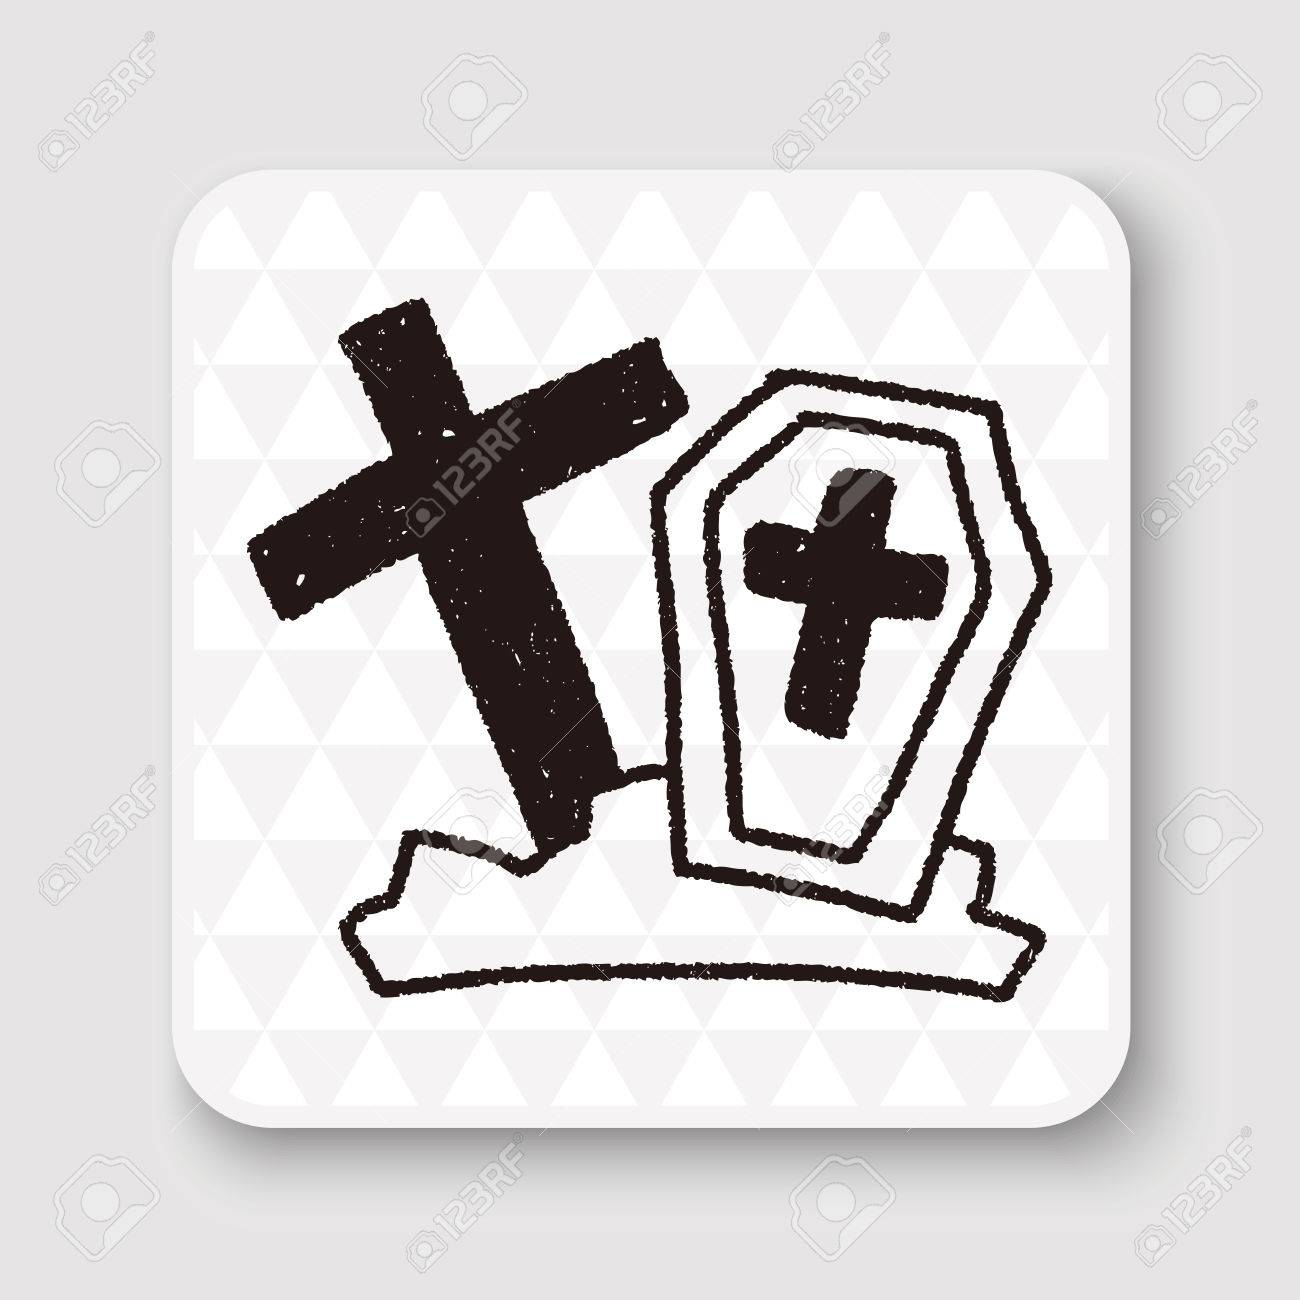 1300x1300 Grave Doodle Drawing Royalty Free Cliparts, Vectors, And Stock